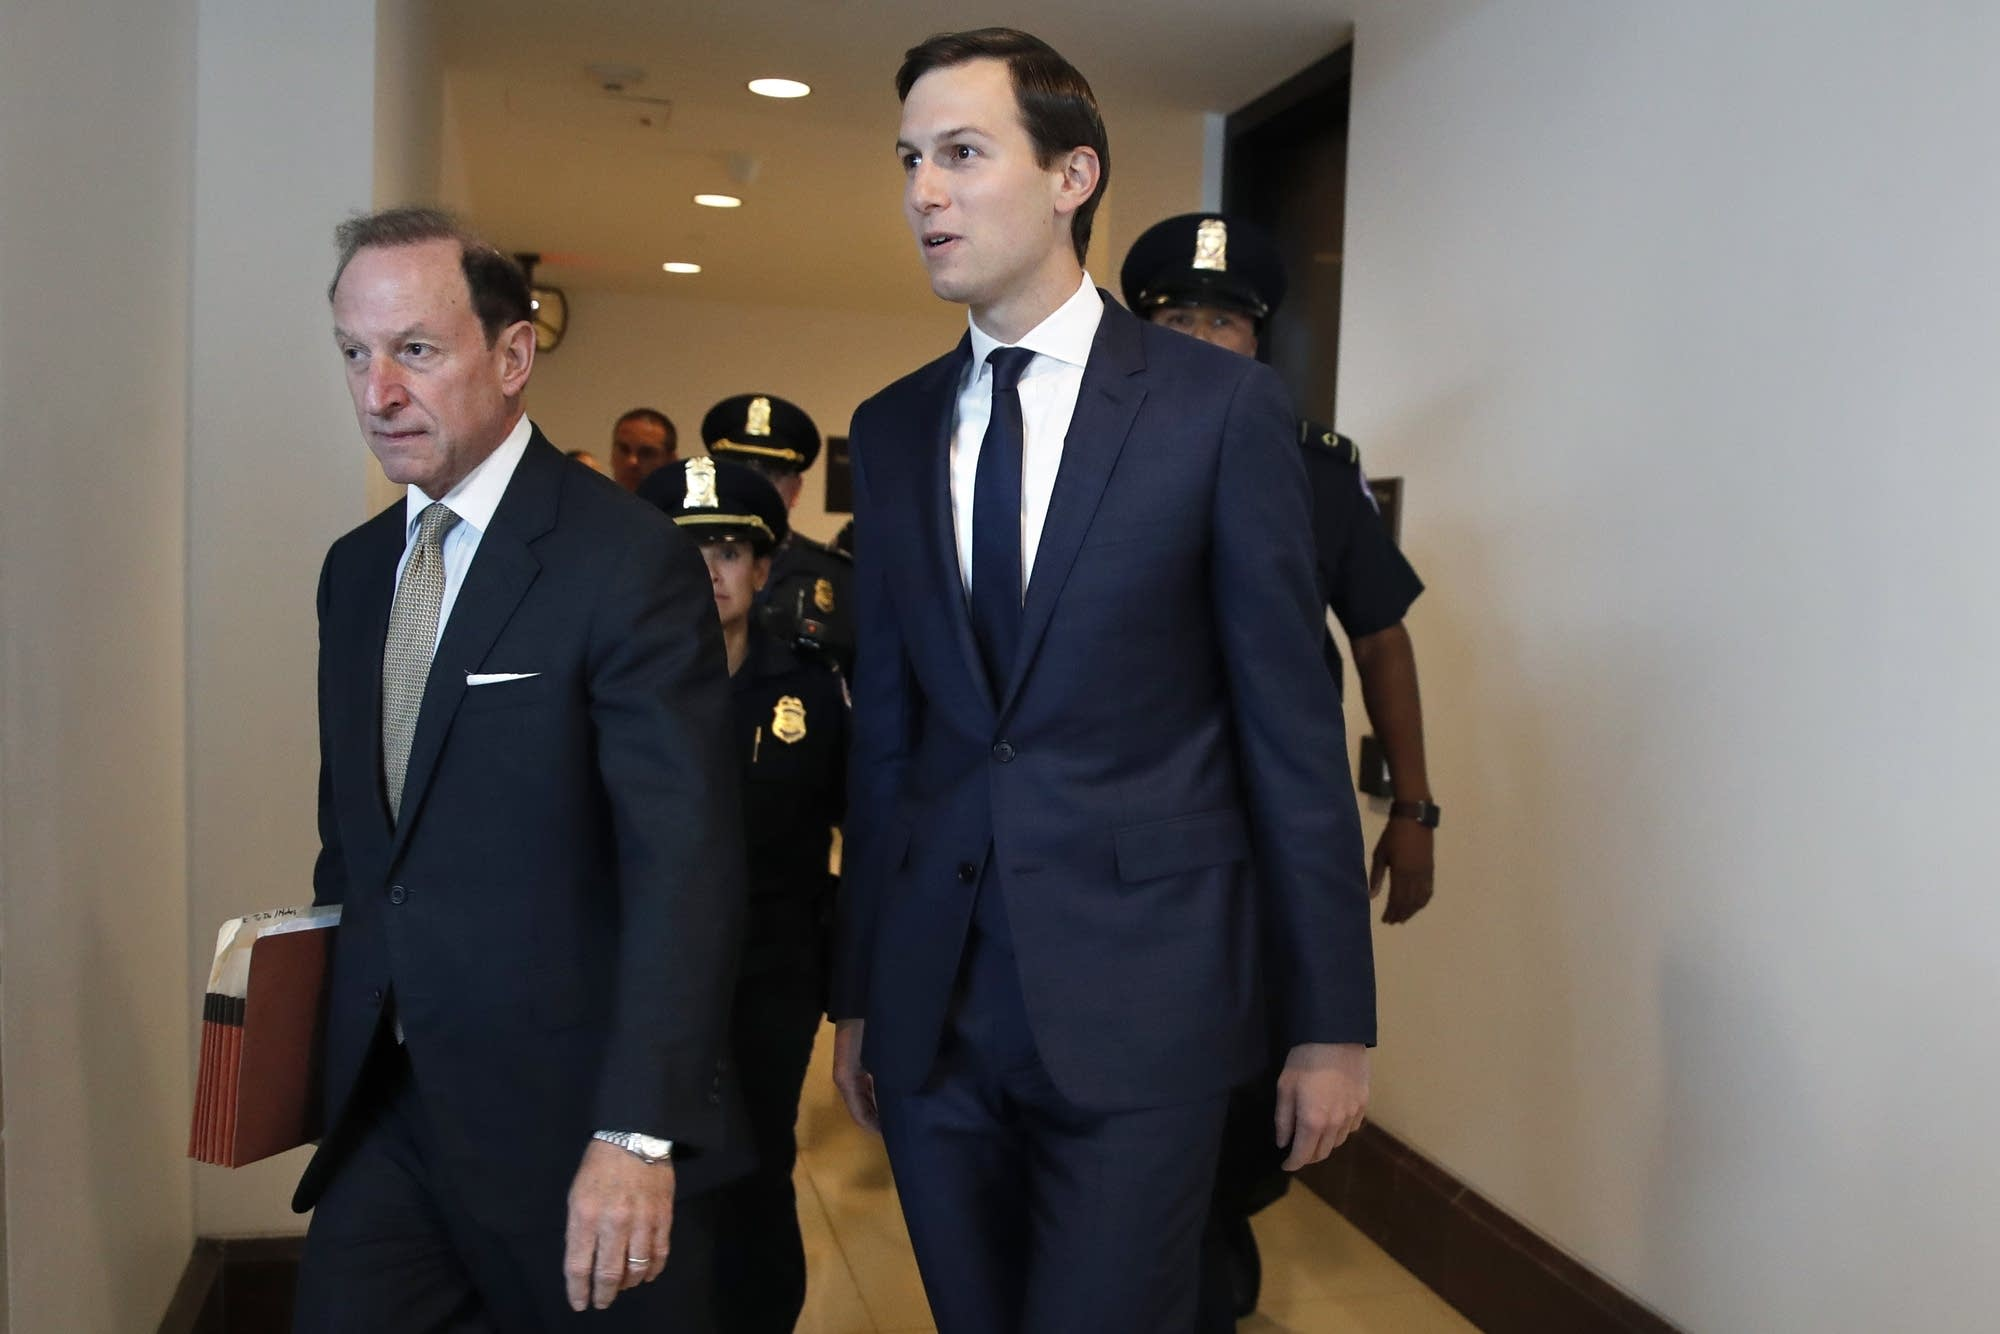 White House adviser Jared Kushner, right, and his attorney Abbe Lowell